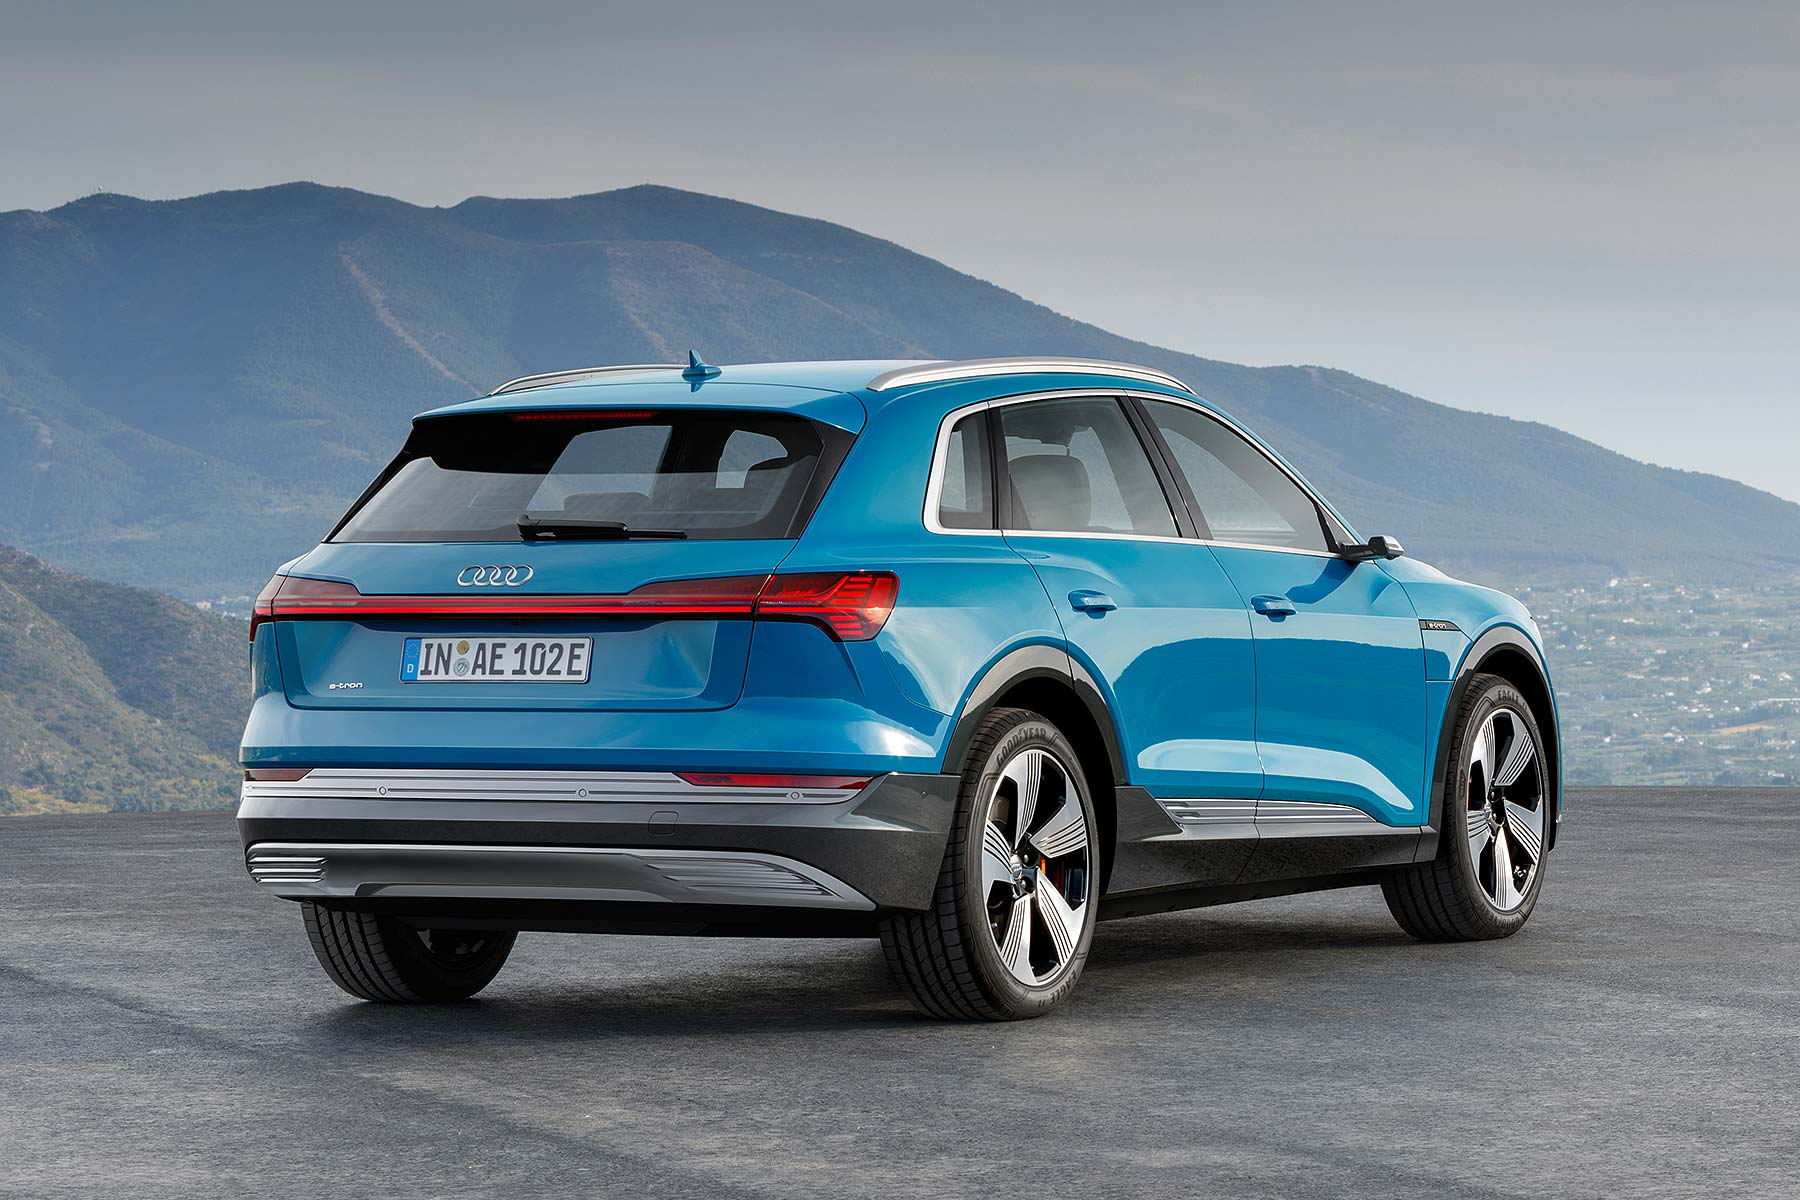 Audi Etron Electric SUV Revealed Begins Car EV Surge - Audi ev